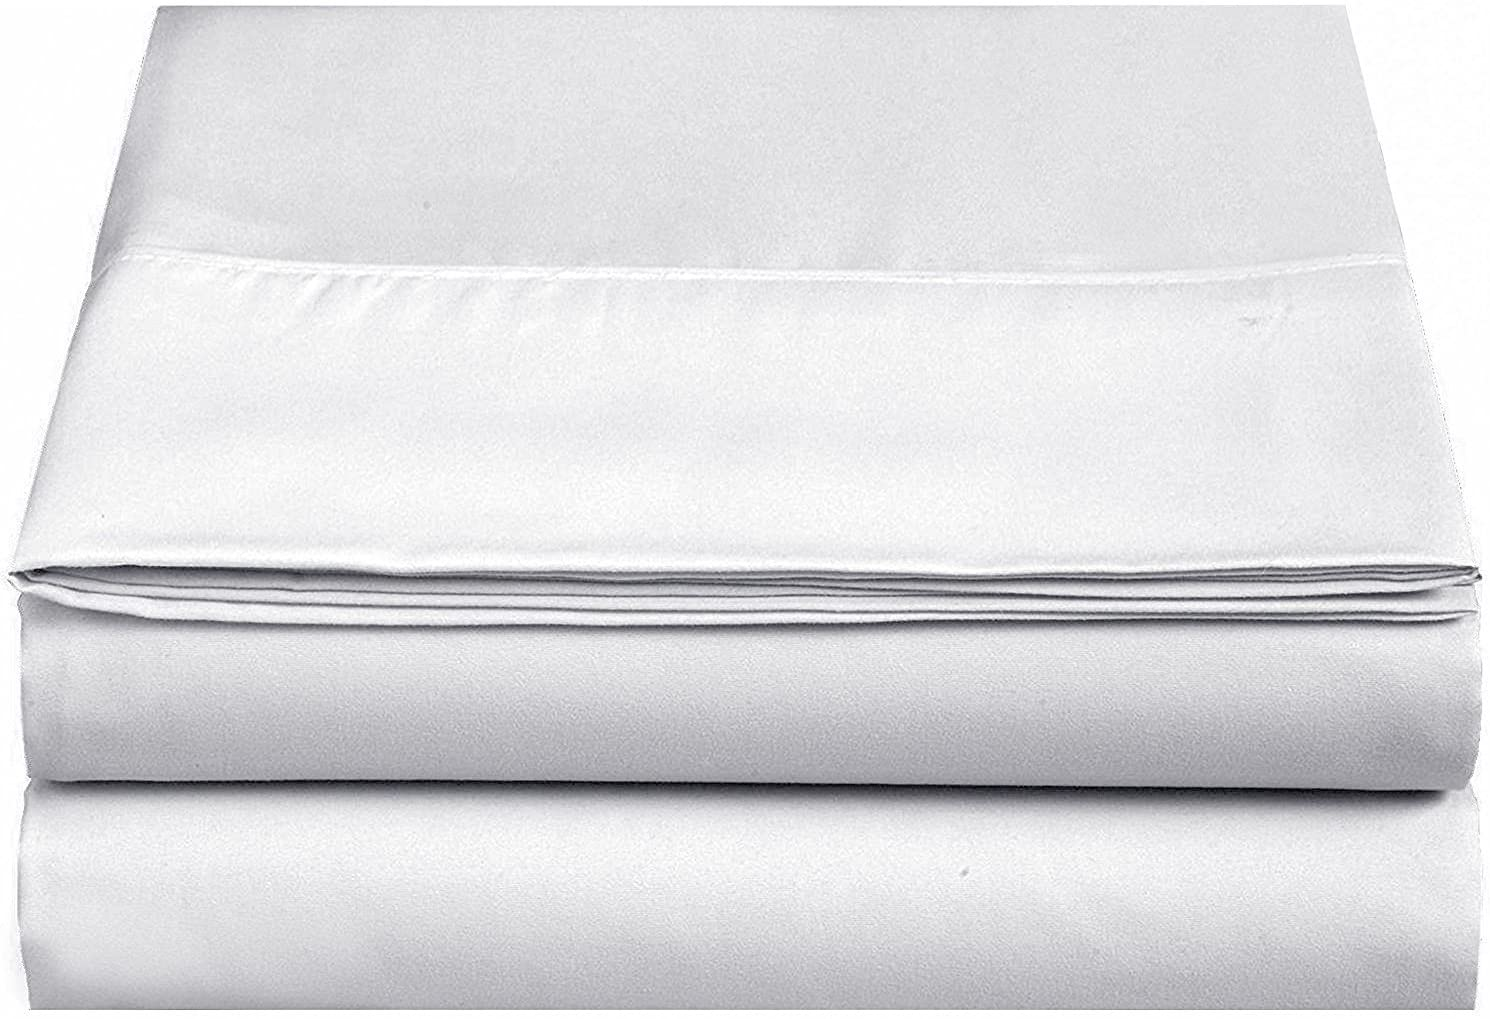 4U LIFE 2 Piece Flat Sheet, Ultra Soft and Comfortable Microfiber, Twin, White: Home & Kitchen